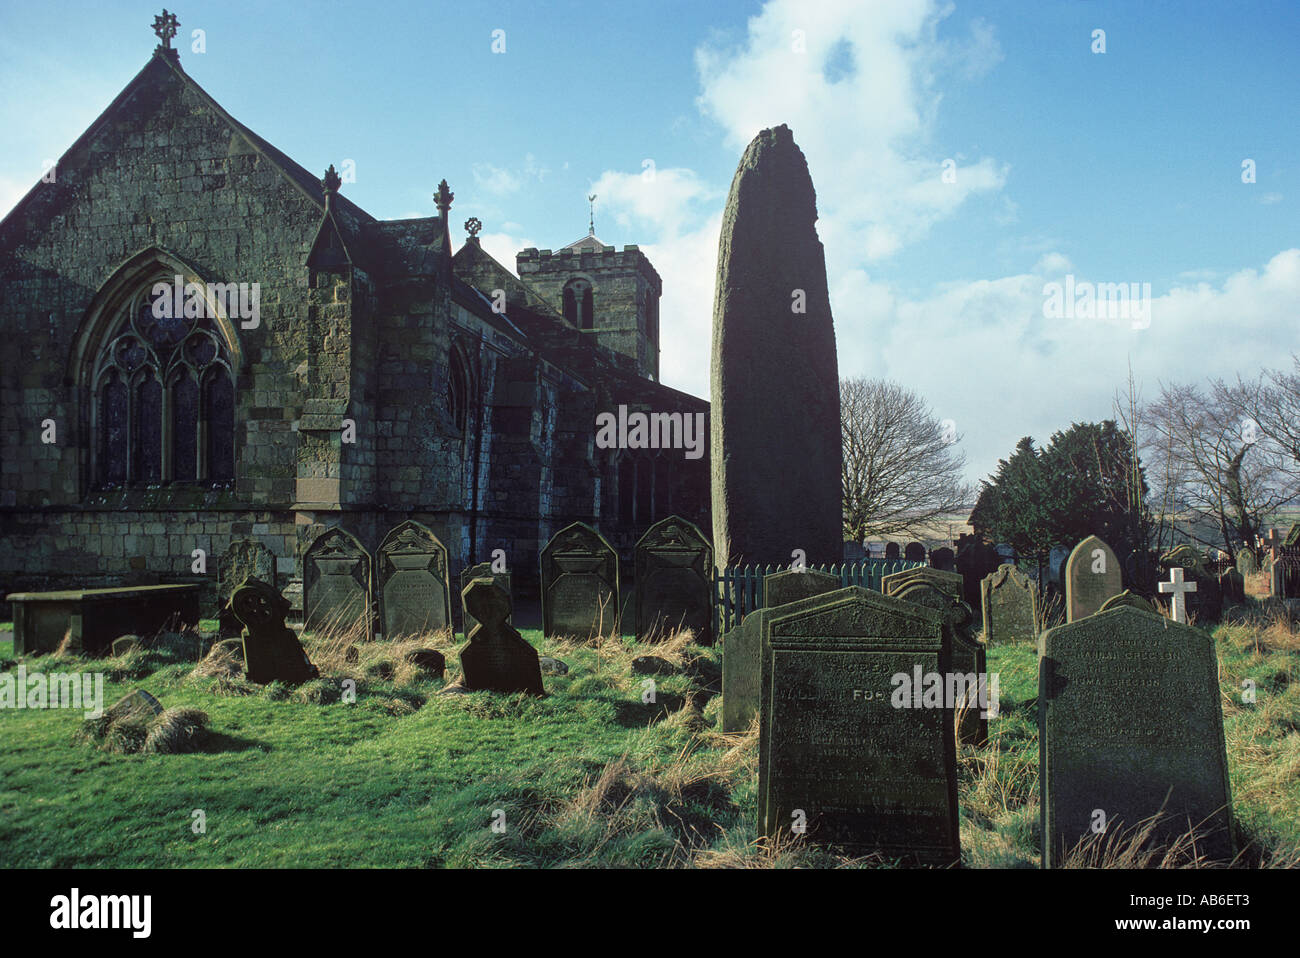 The tallest standing stone in Britain rises 25 feet 4 inches from the churchyard of All Saints Church Rudston in East Yorkshire - Stock Image